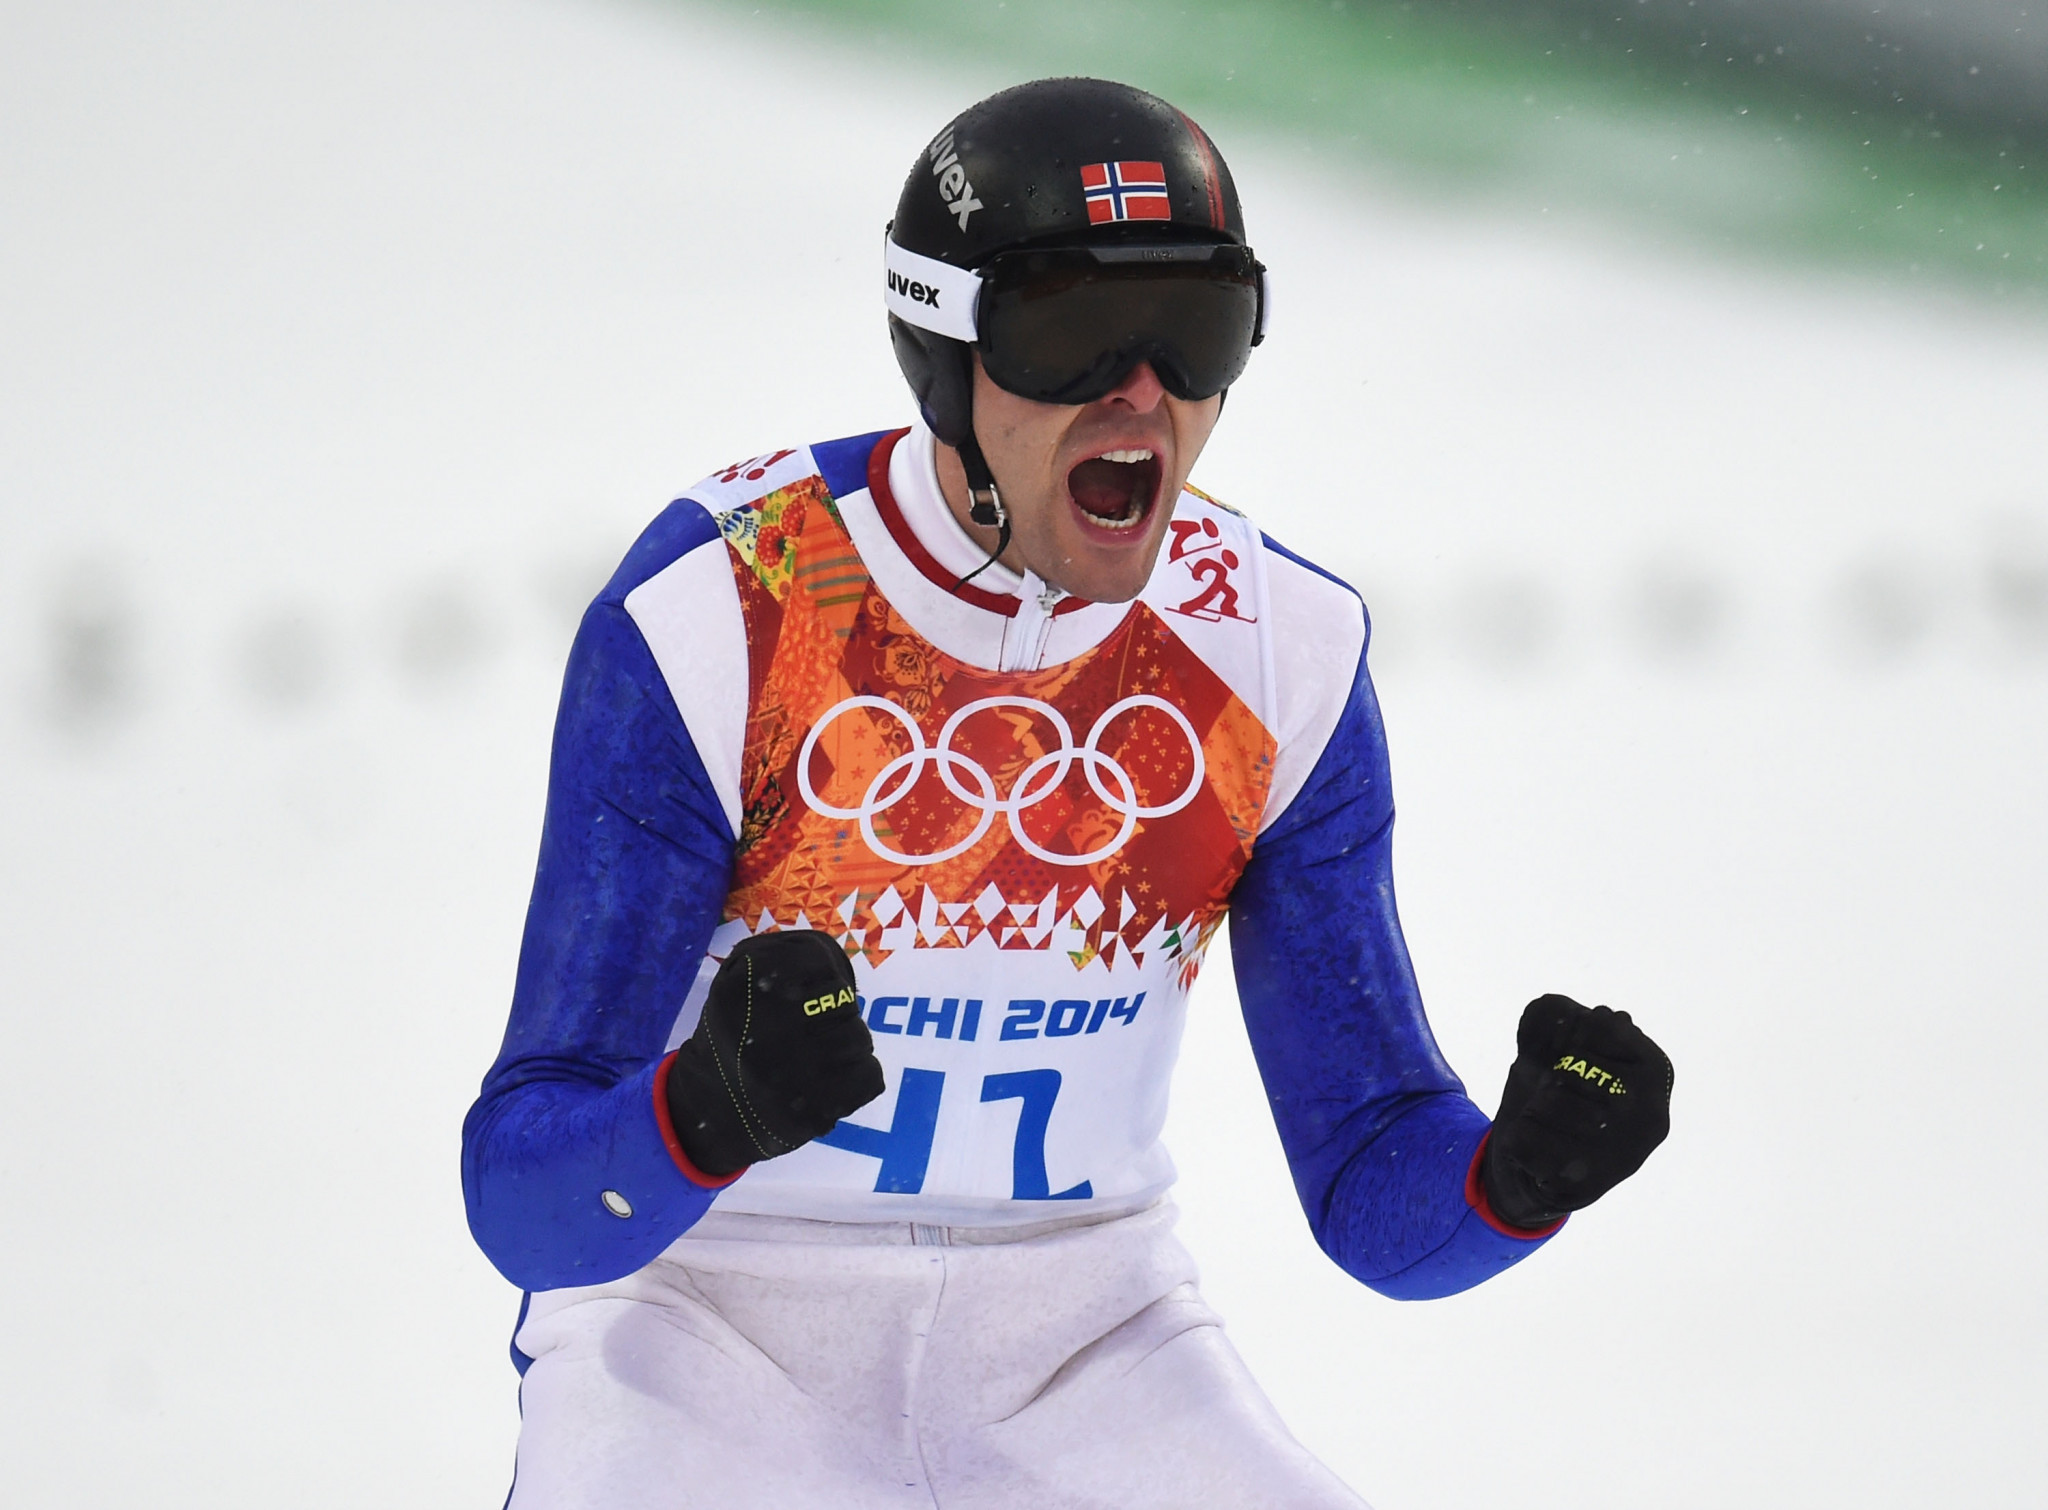 Olympic champion Moan to train away from Norwegian team